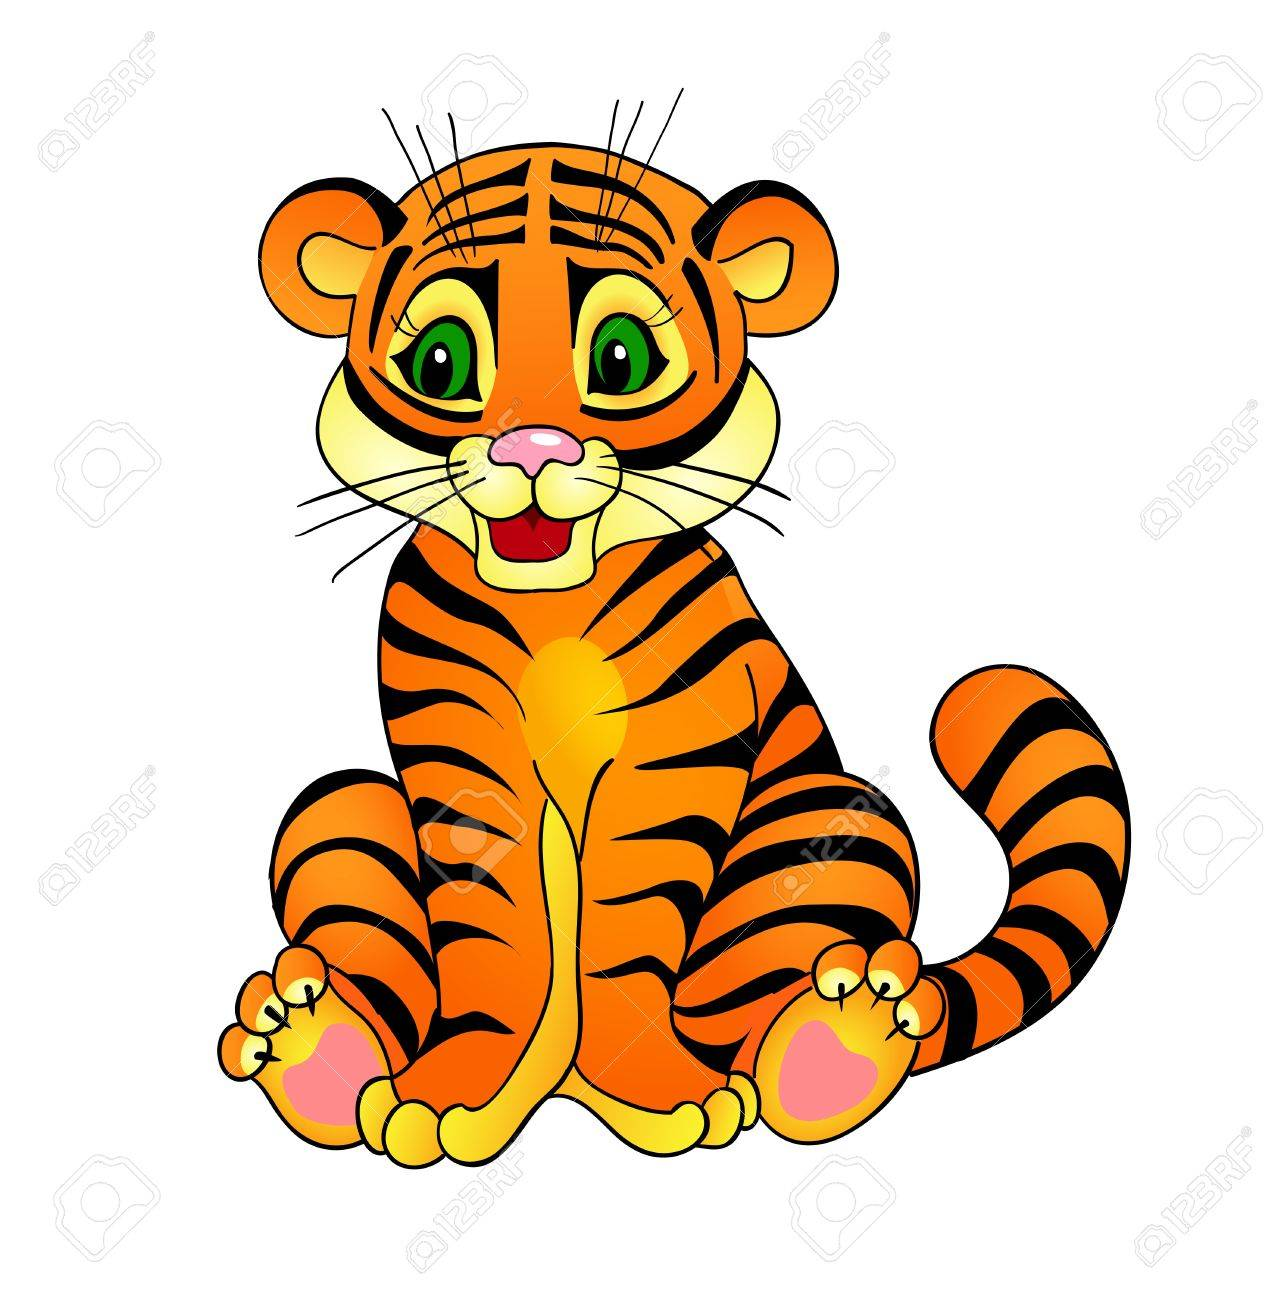 tiger cartoon , with isolation on a white background - 15526812